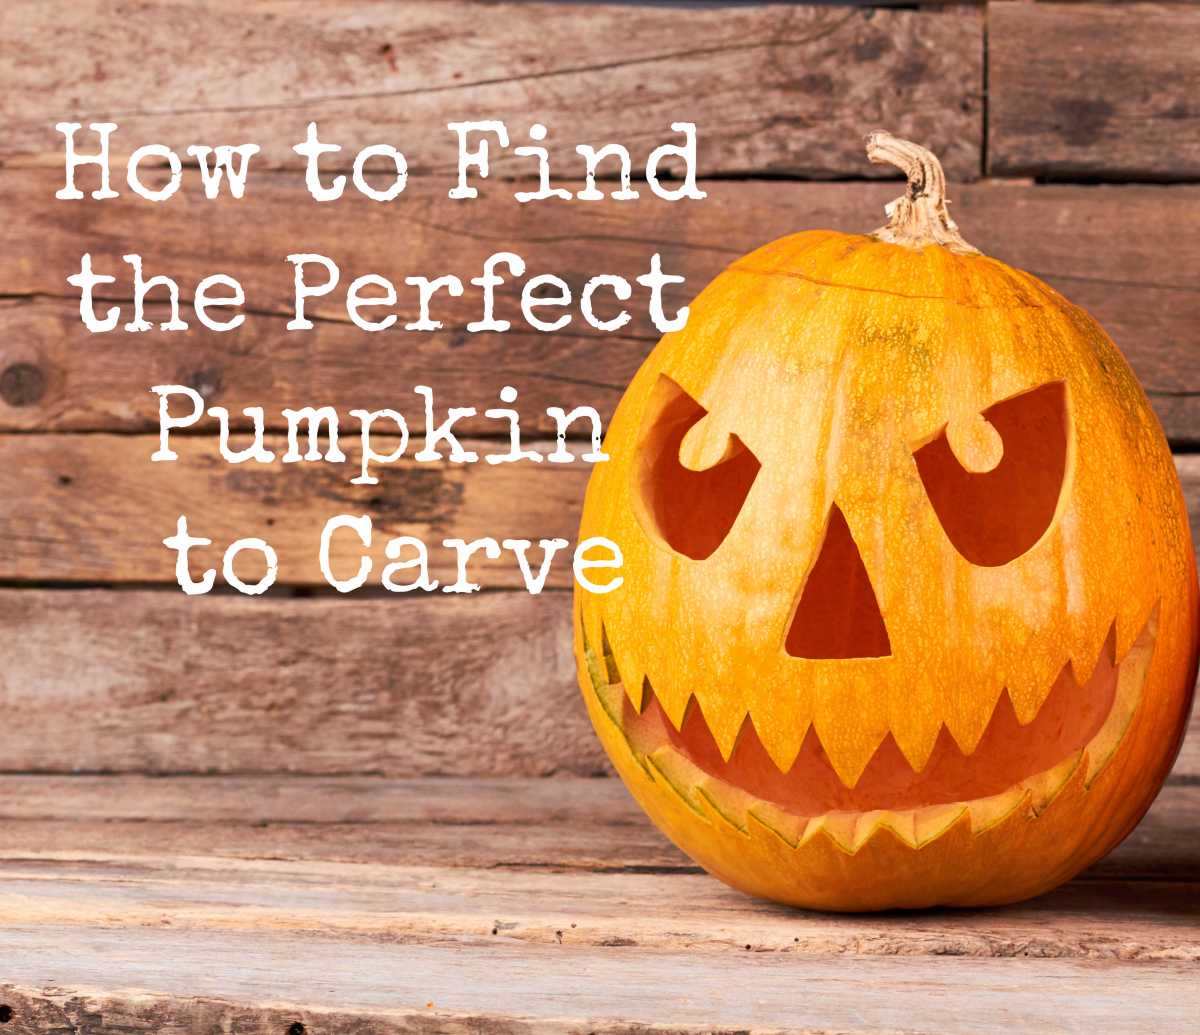 How to Find the Perfect Pumpkin toCarve